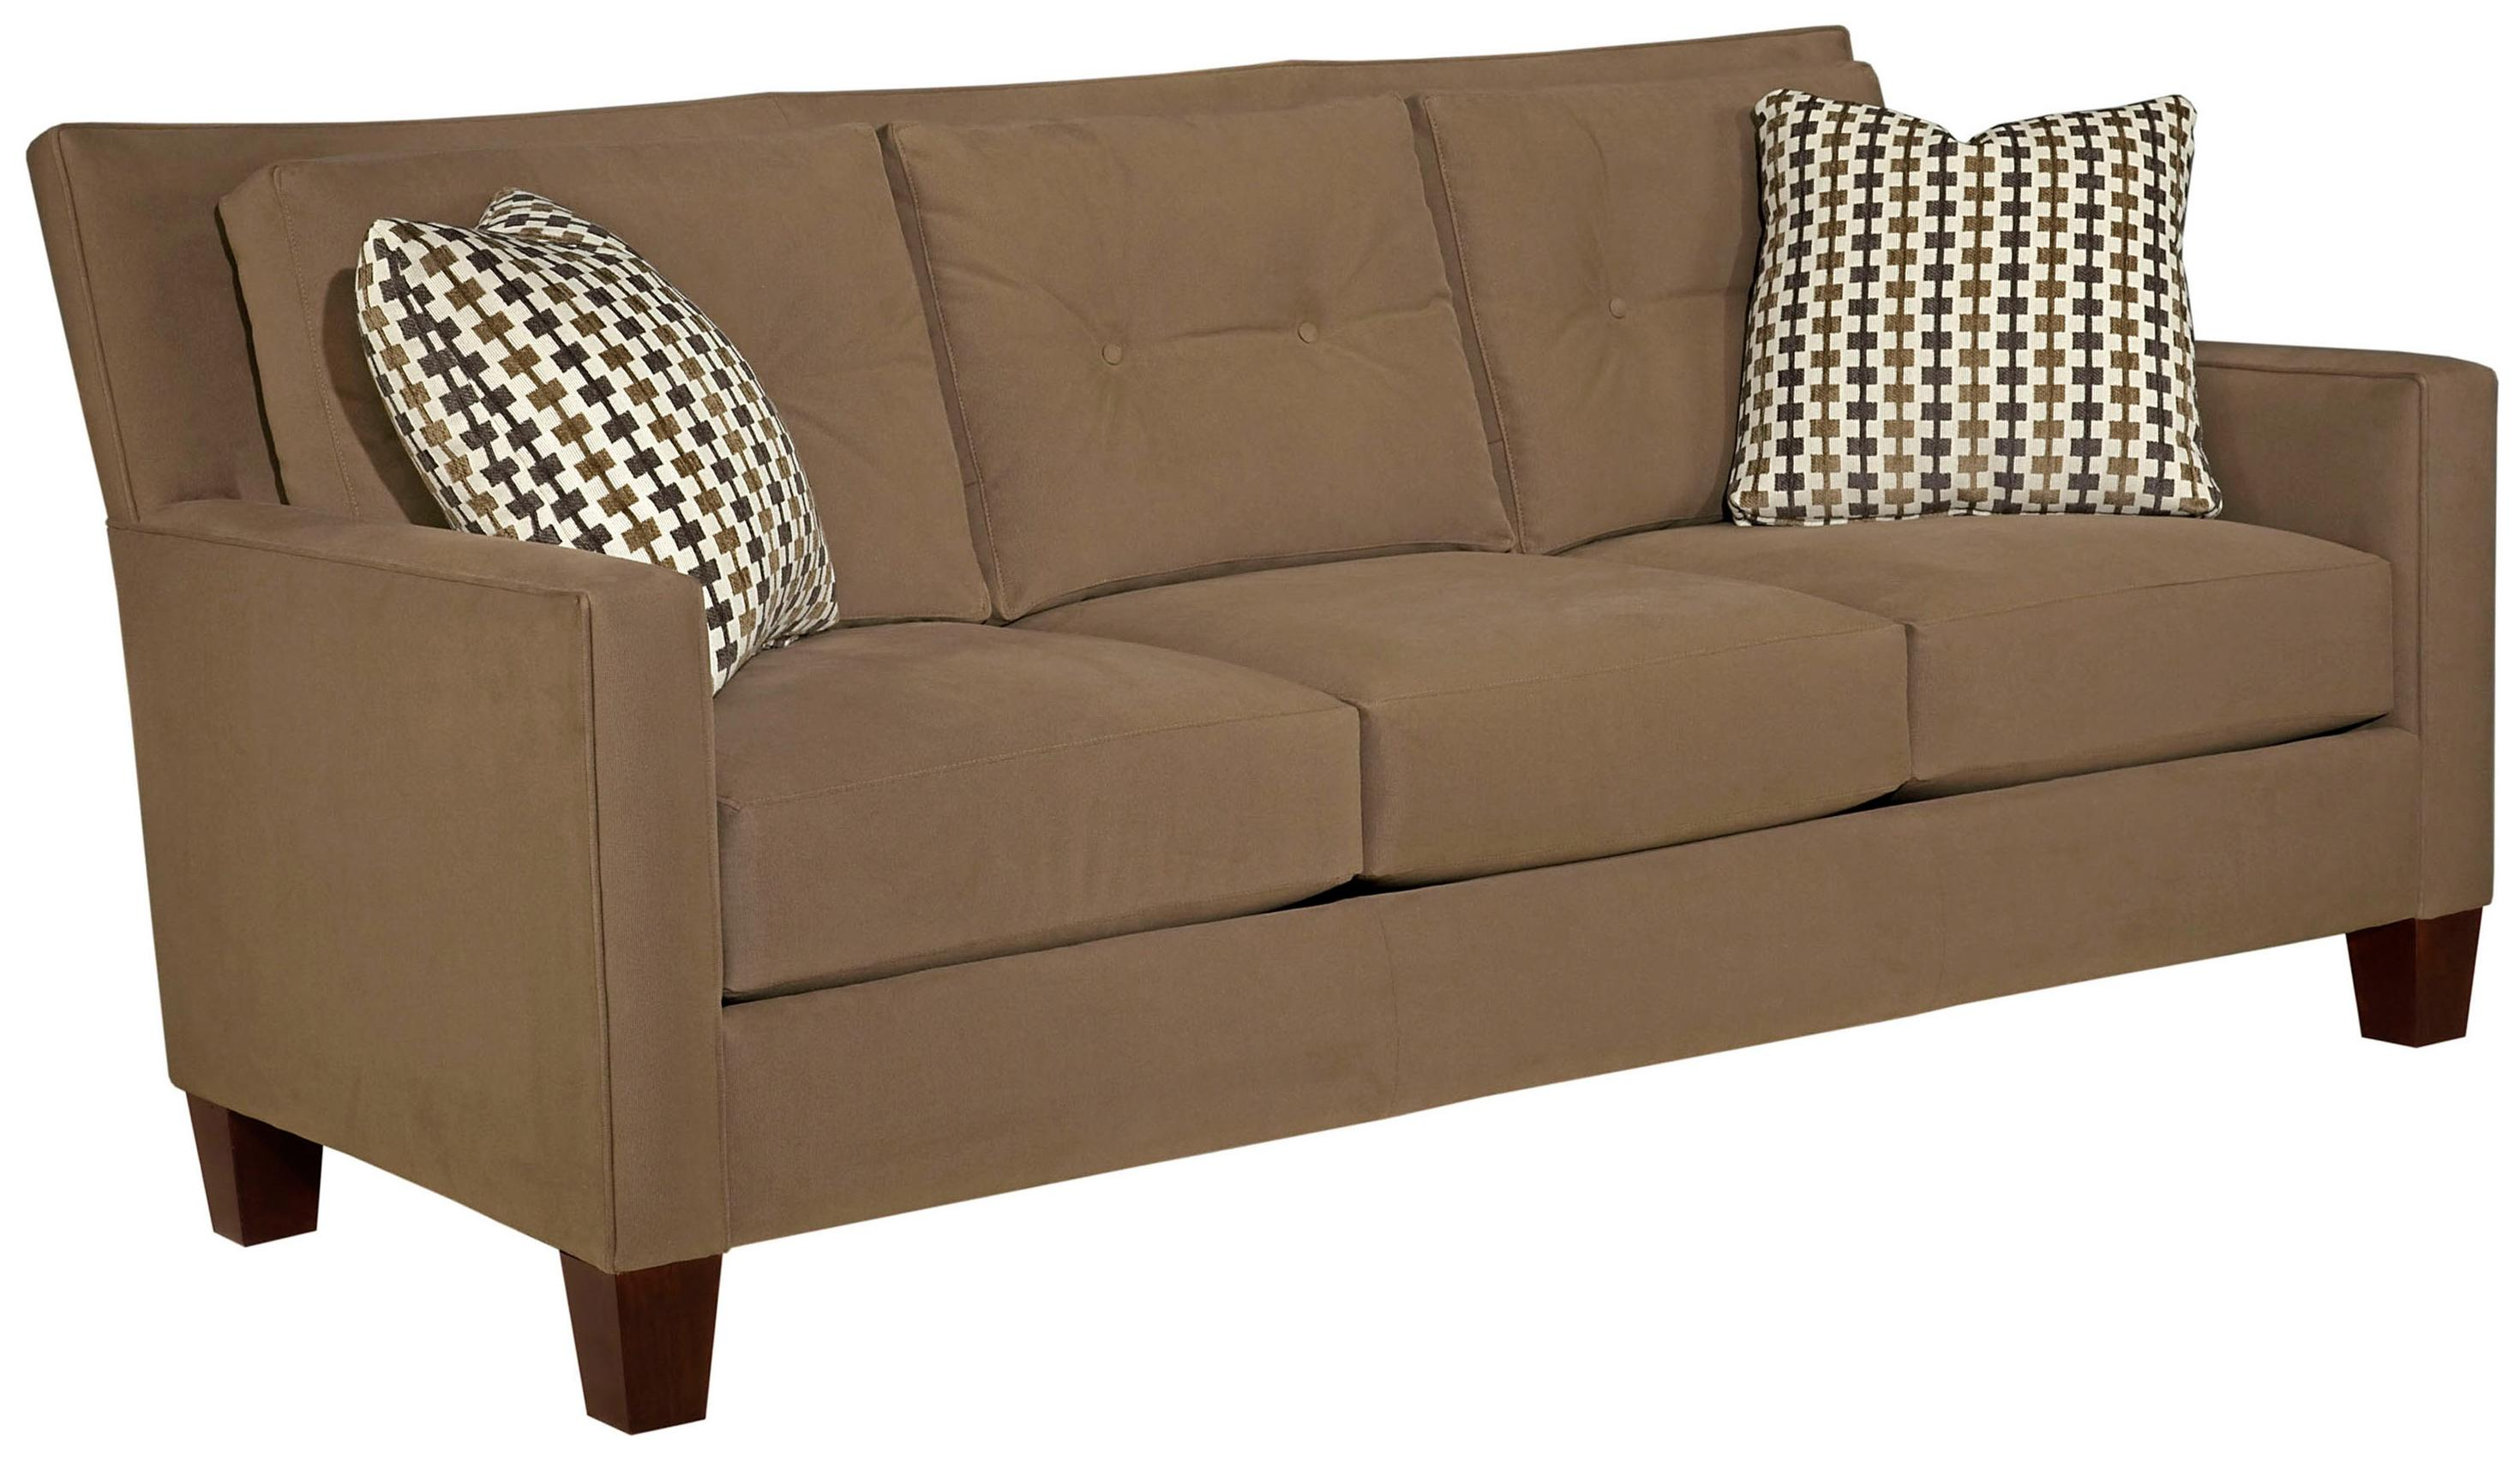 Broyhill Furniture Jevin Contemporary Sofa  - Item Number: 6018-3